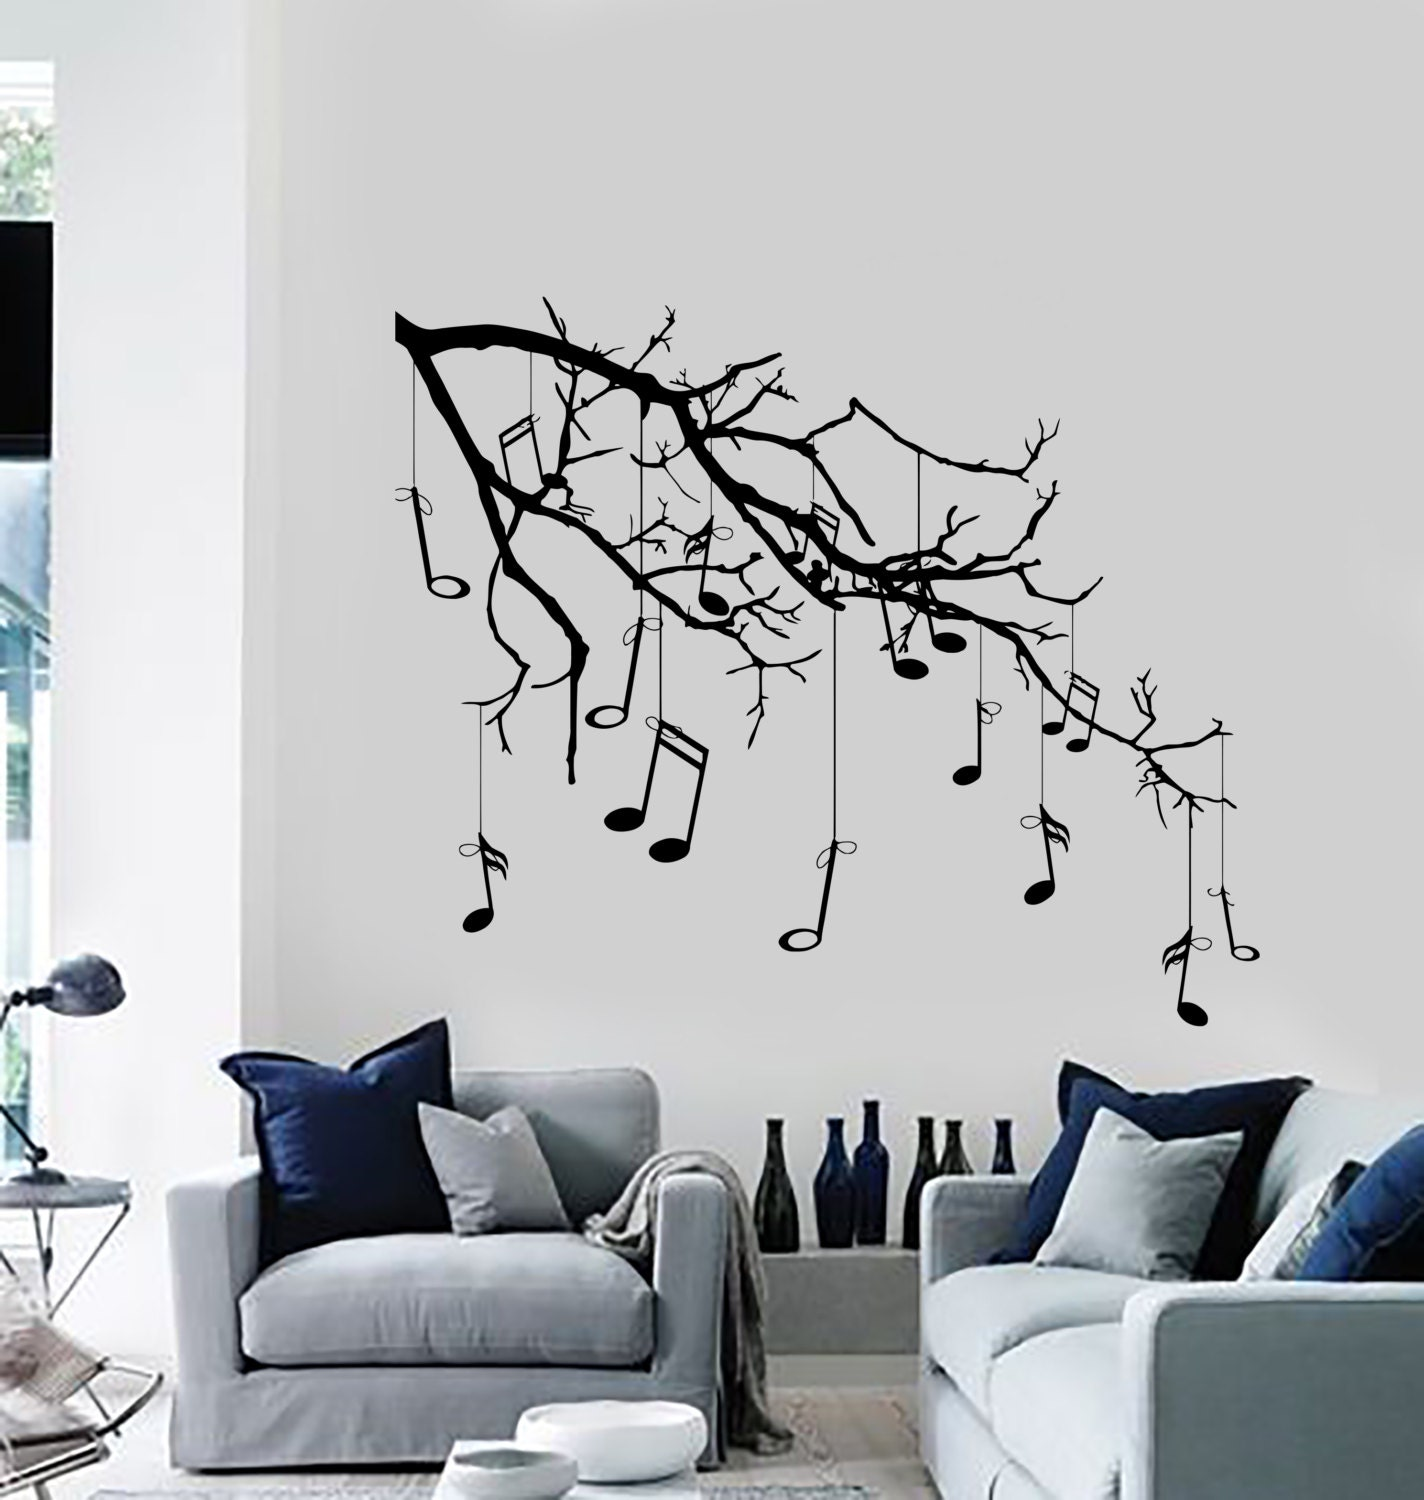 wall vinyl decal tree with branches hanging music notes modern zoom